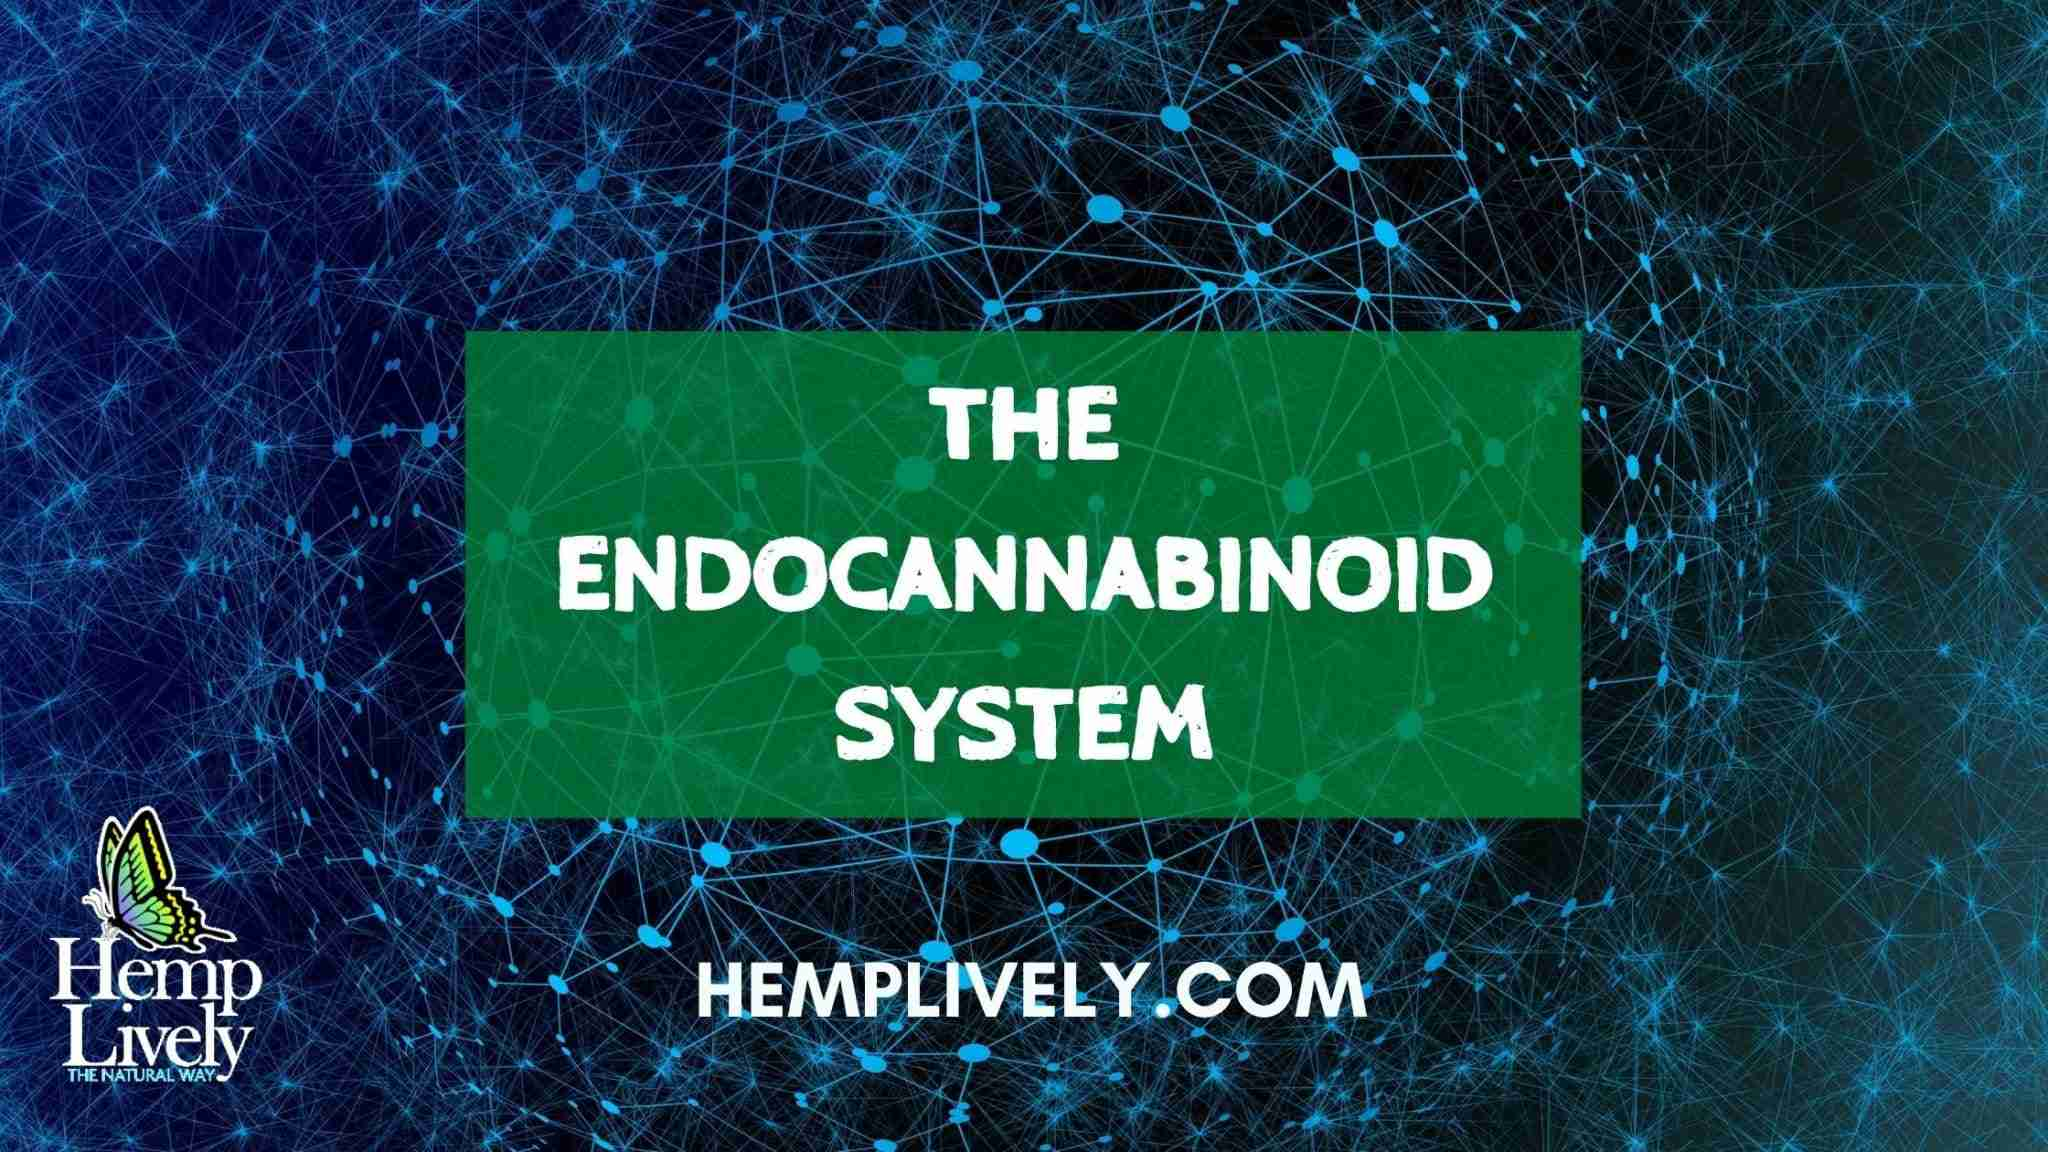 The Endocannabinoid System: Our Body's Link to Hemp